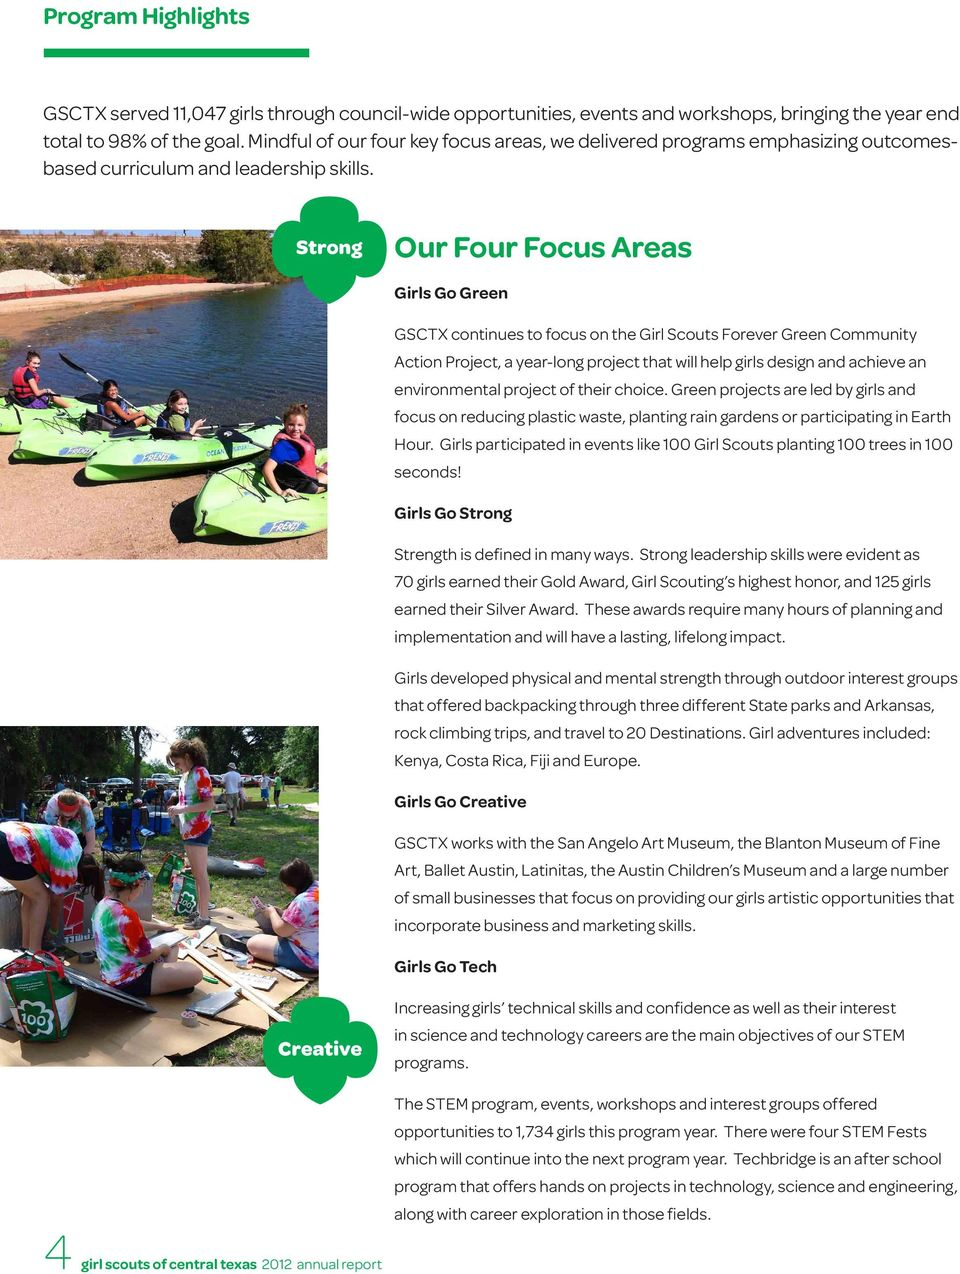 Strong Our Four Focus Areas Girls Go Green GSCTX continues to focus on the Girl Scouts Forever Green Community Action Project, a year-long project that will help girls design and achieve an